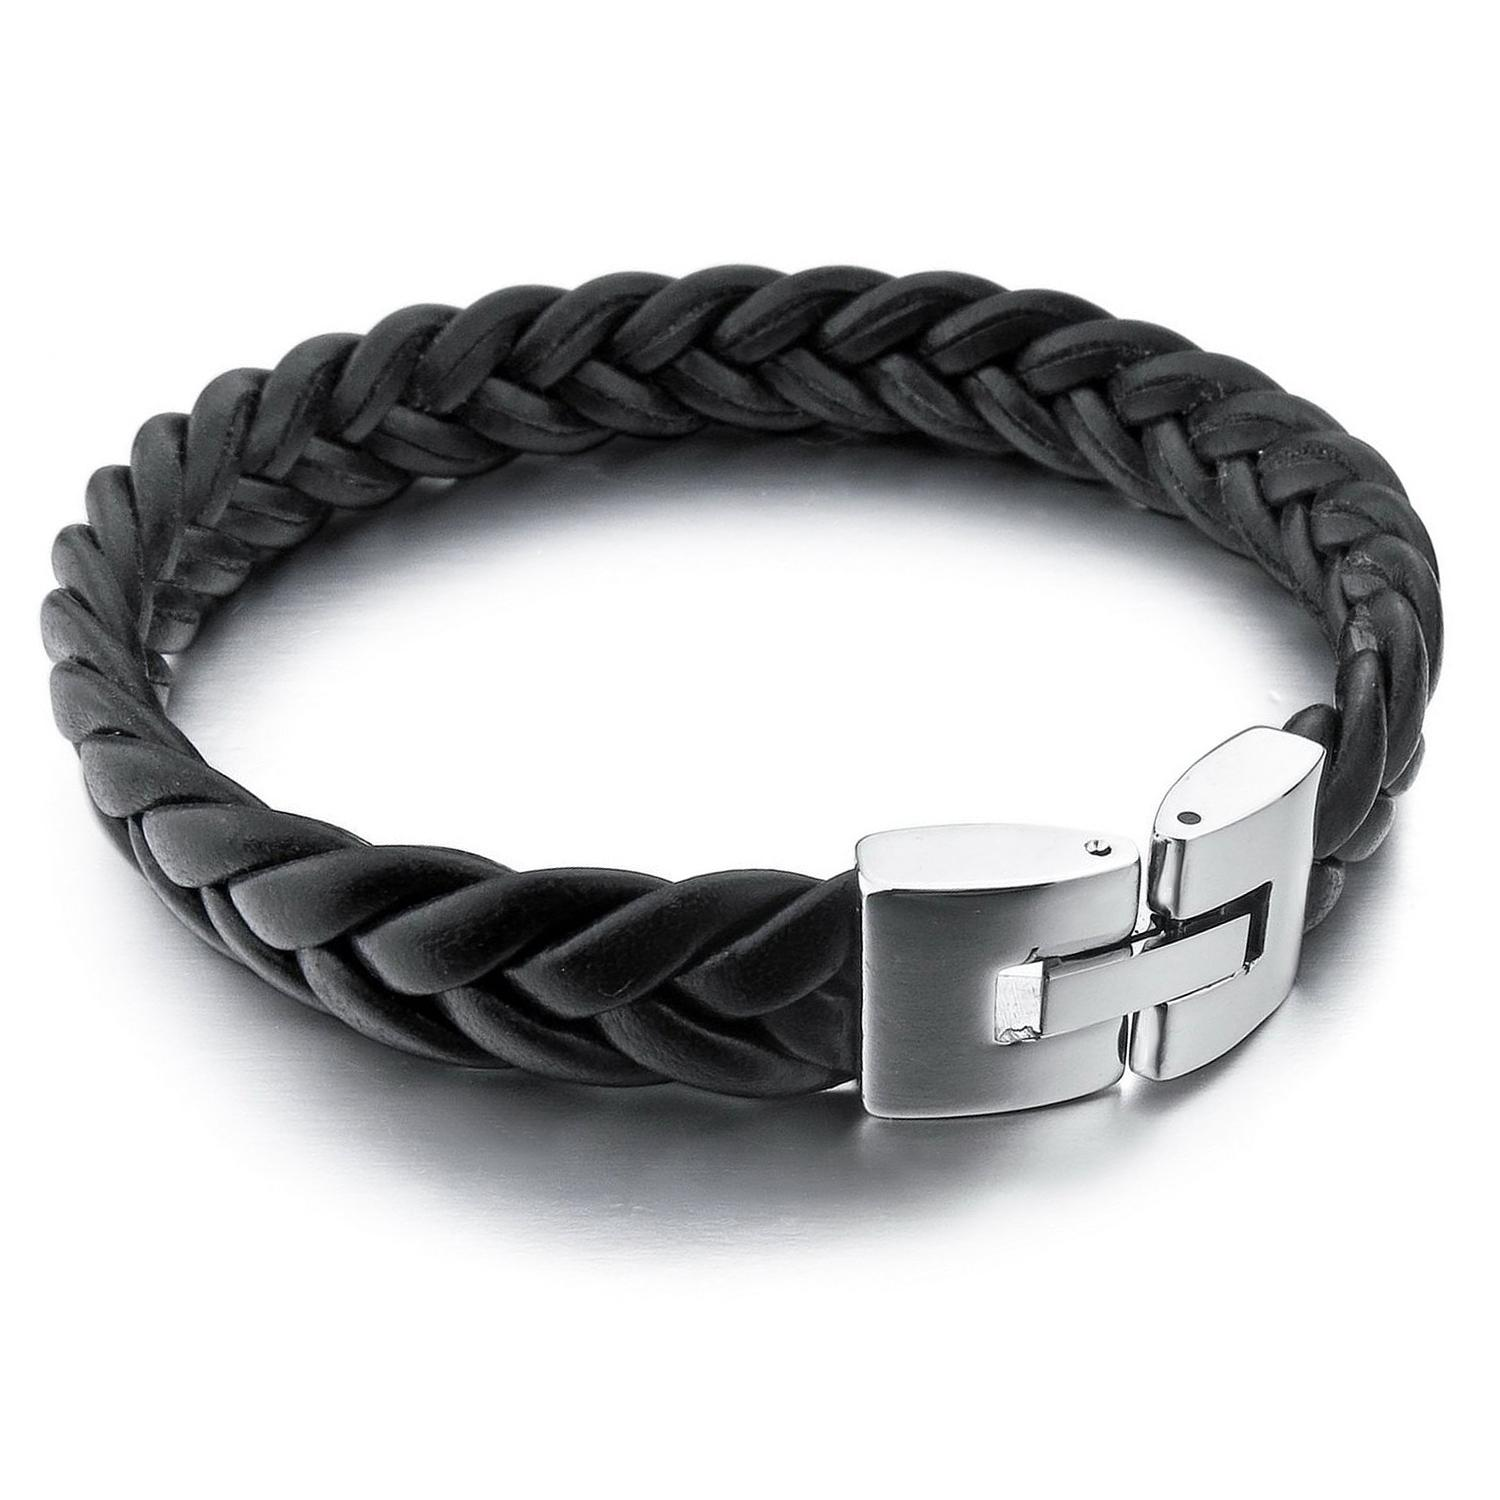 Mendino 10mm Mens Cord Braided Bangle Leather Stainless Steel Bracelet Black Tone 8/8.5/9 Inch By Wripples.